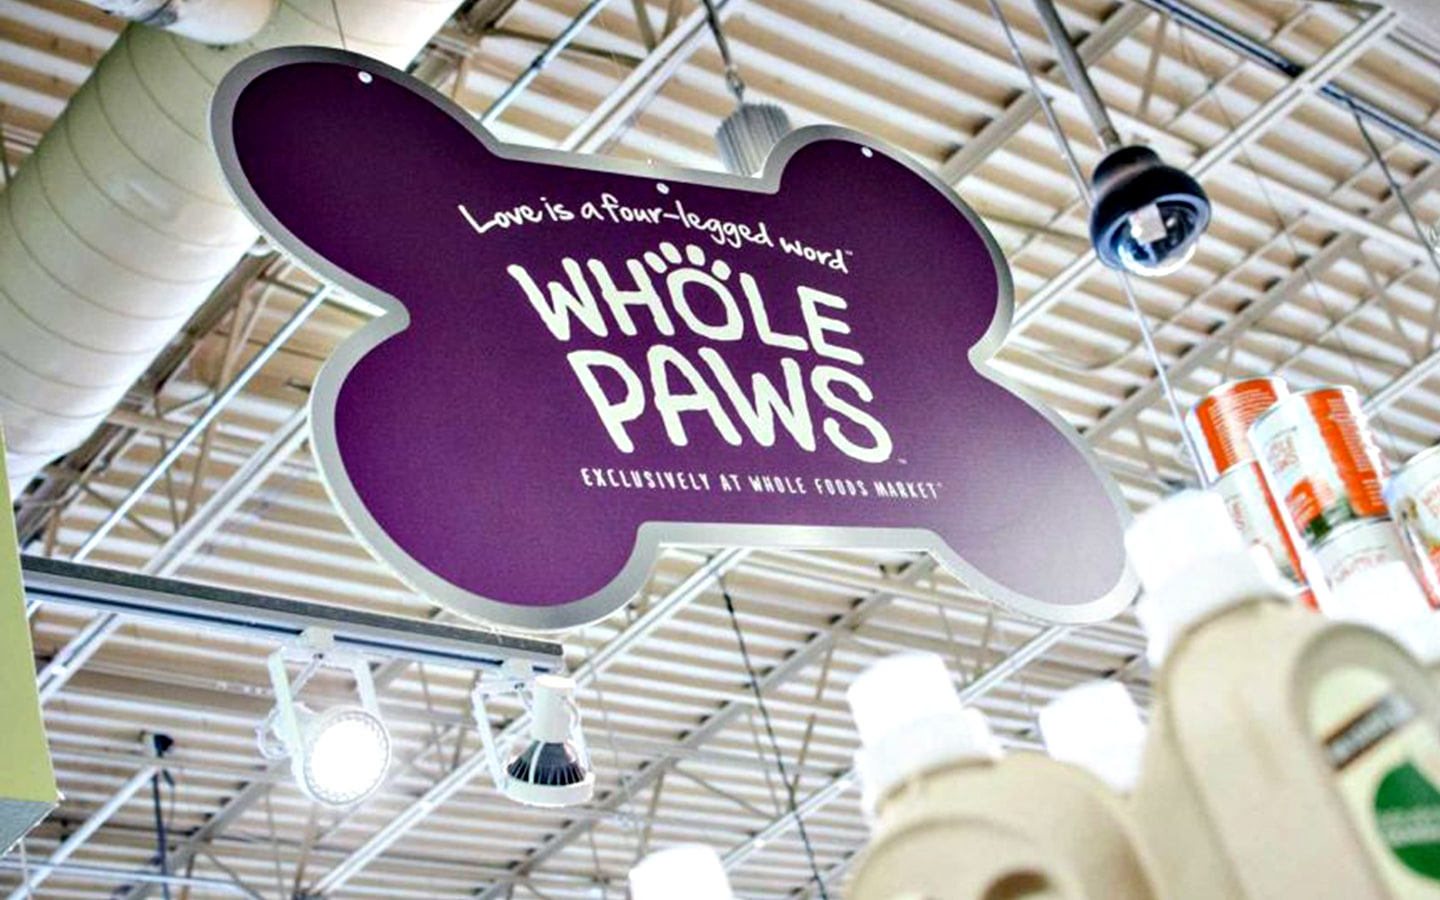 WFM Whole Paws in-store hanging sign